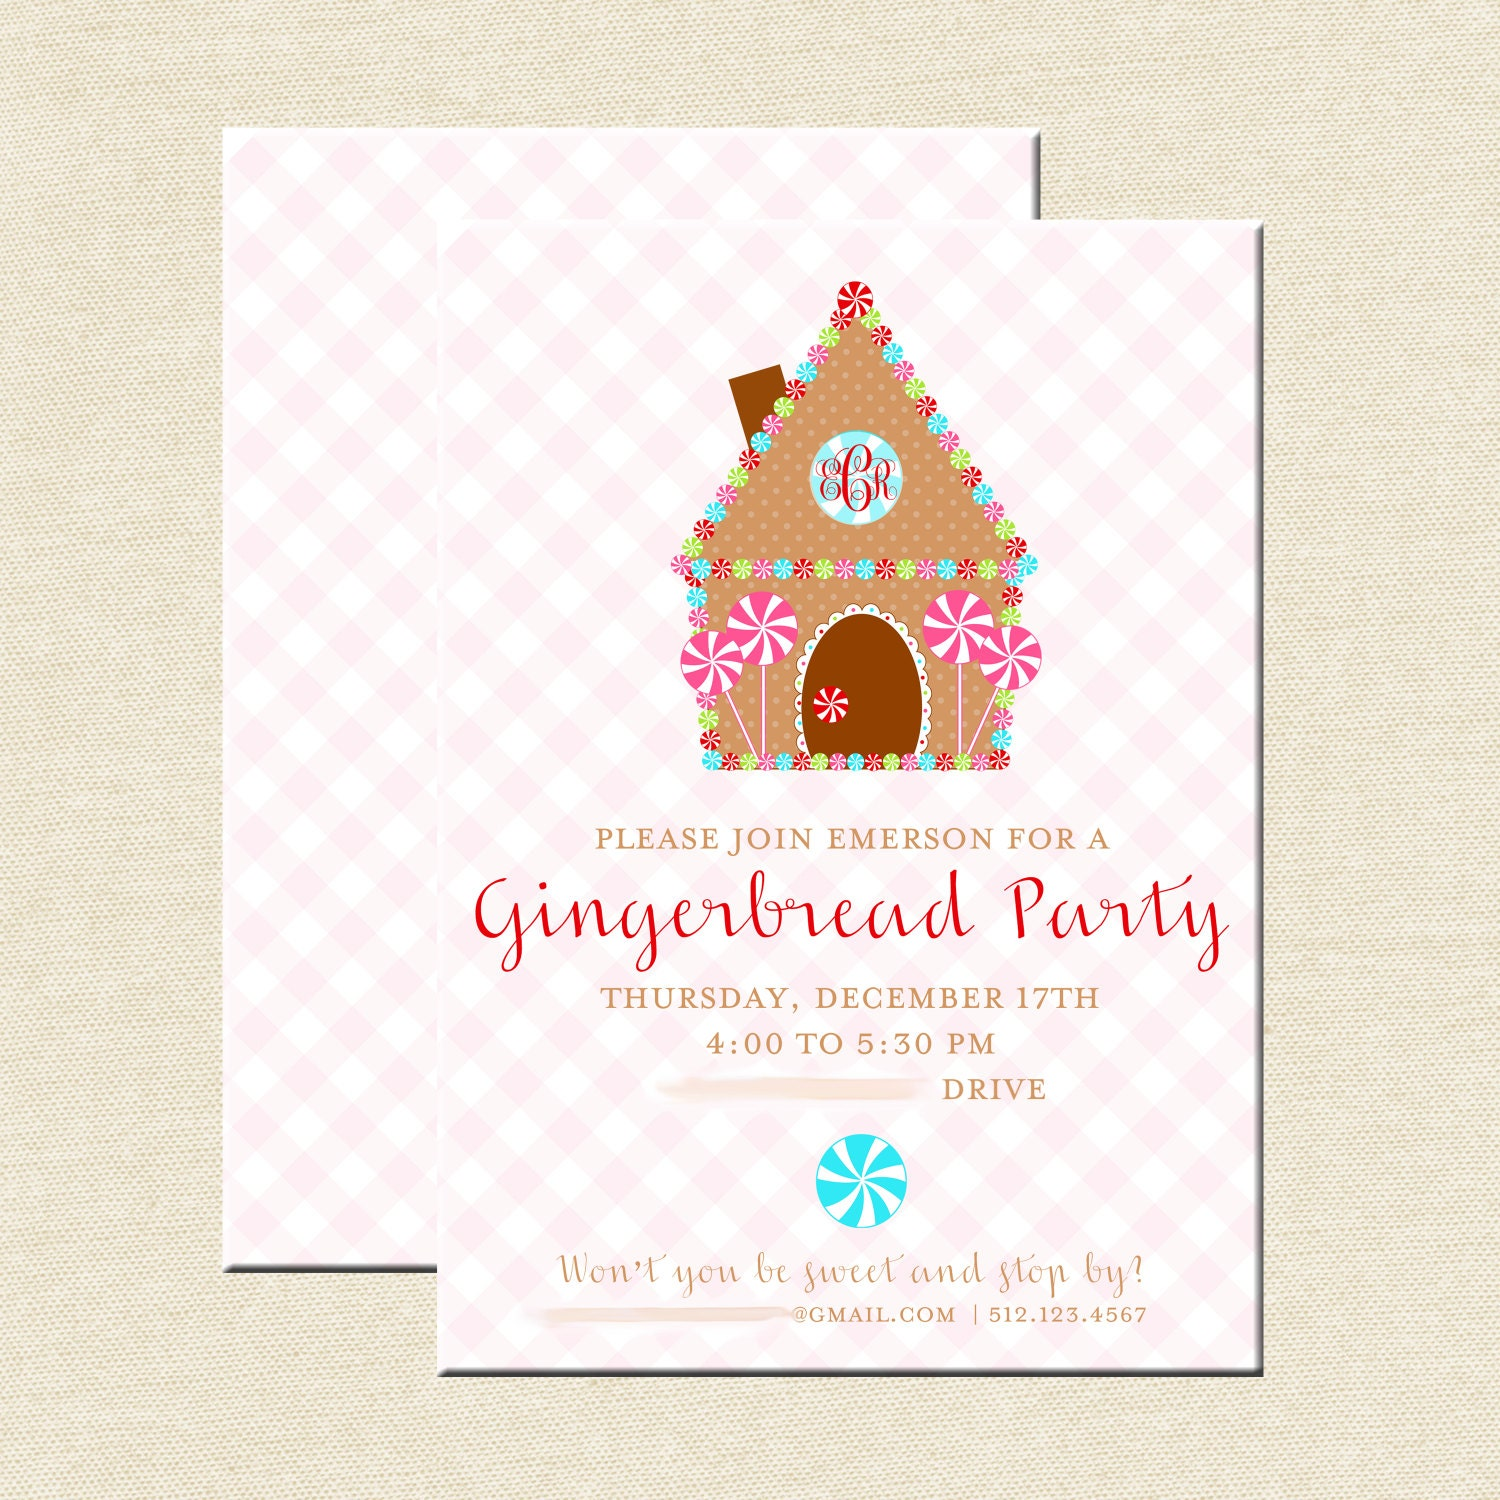 Gingerbread house decorating invitations Gingerbread house decorating party invitations